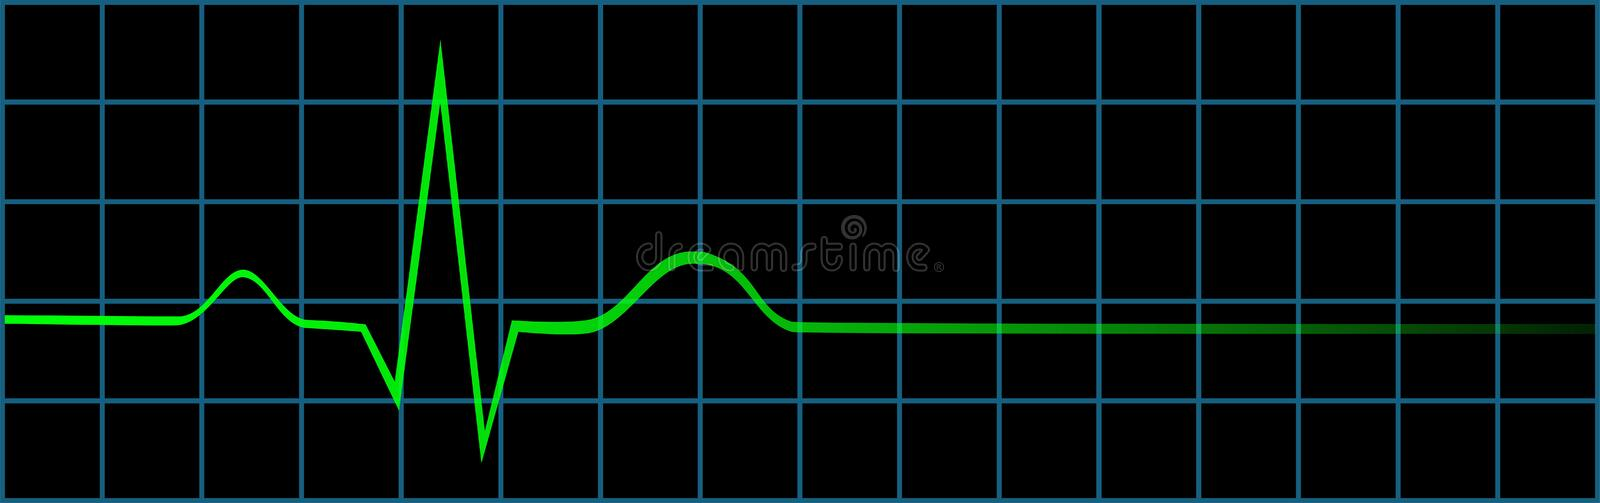 Electrocardiogram Showing Last Heart Beat stock illustration